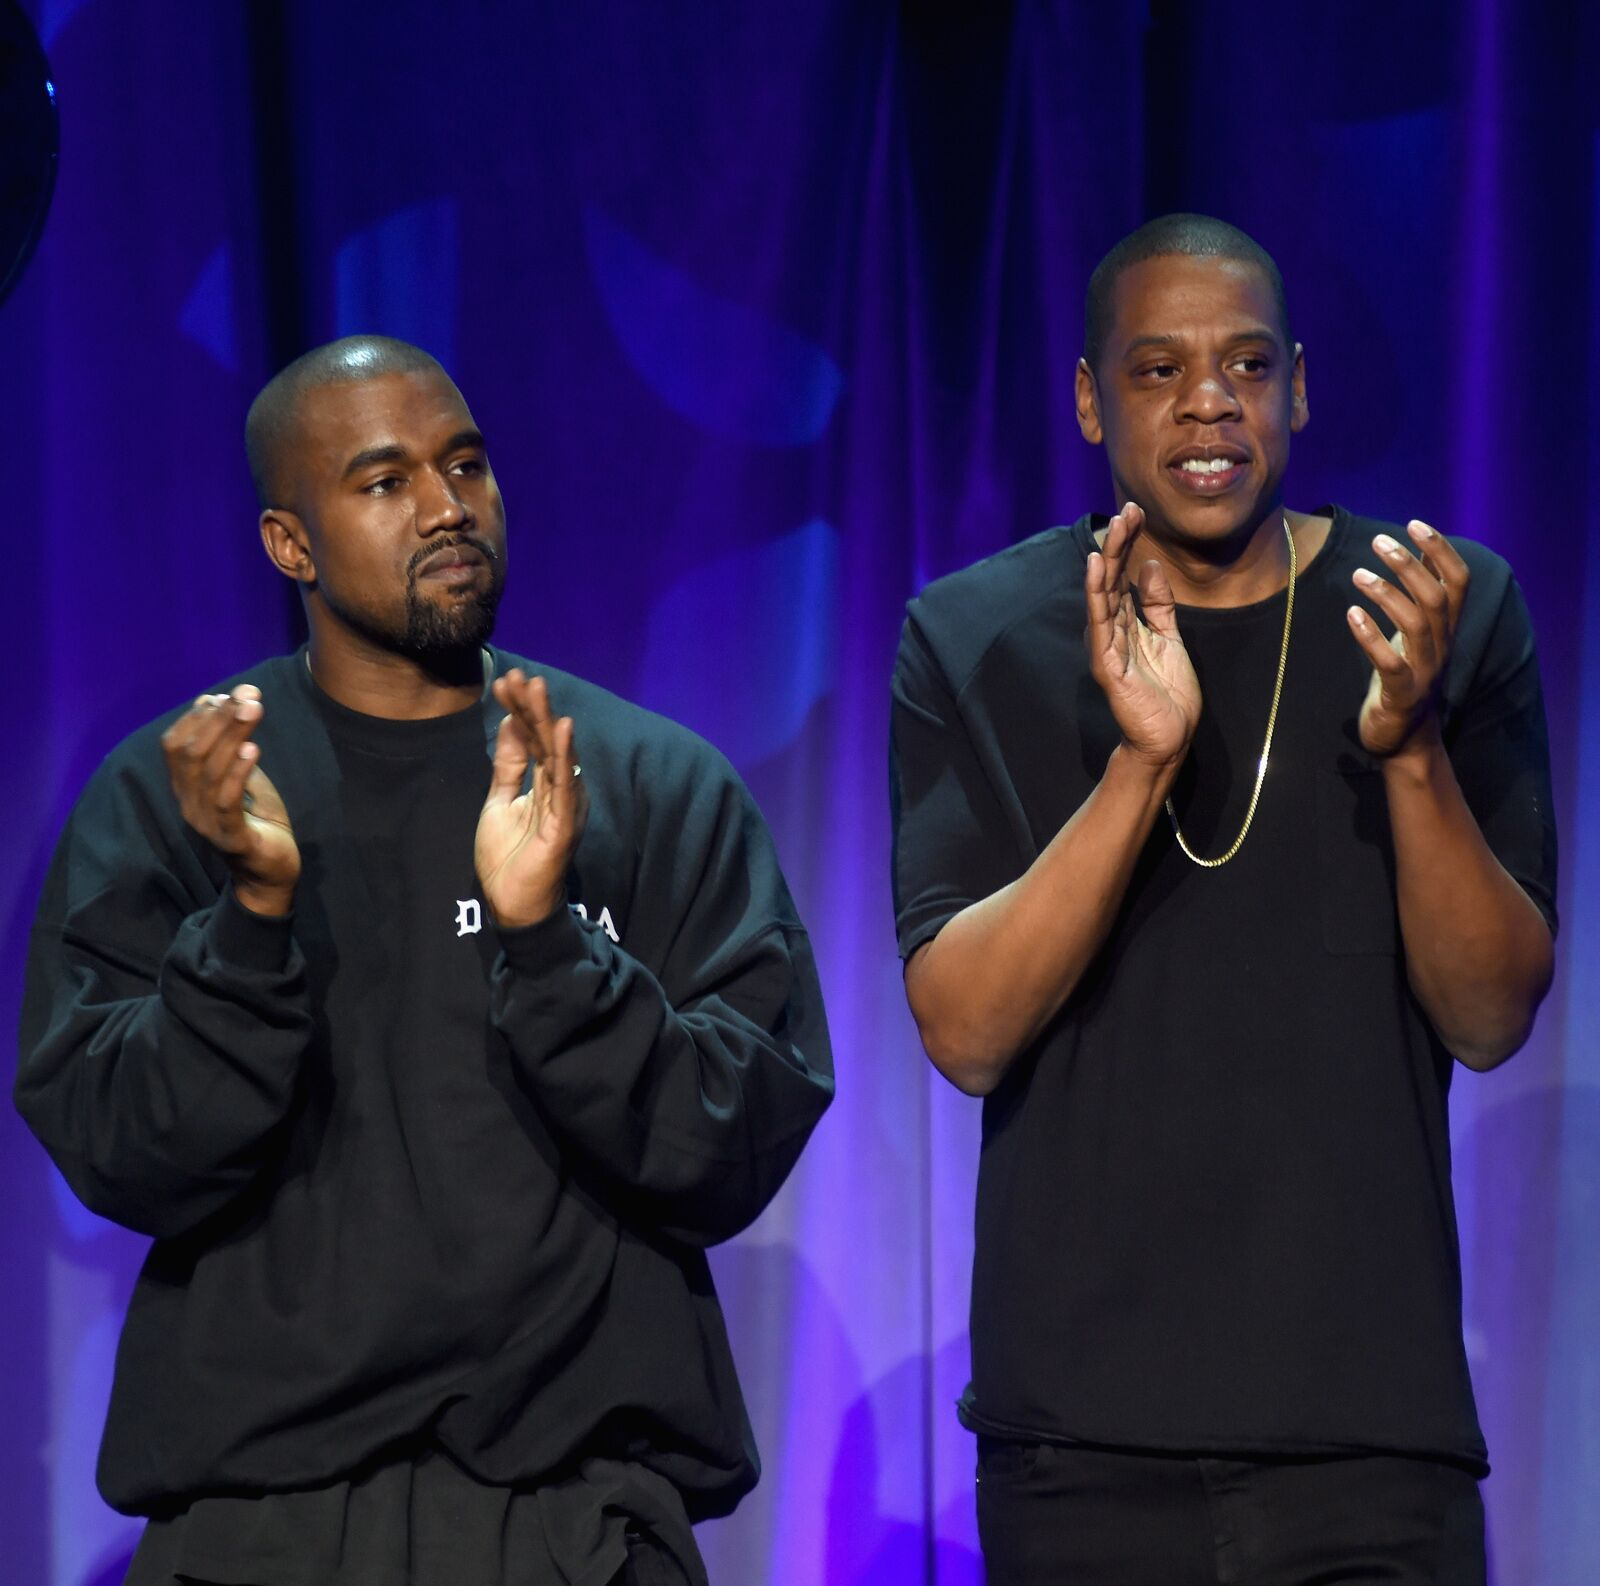 Kanye West and Jay-Z are brothers, the feud is over